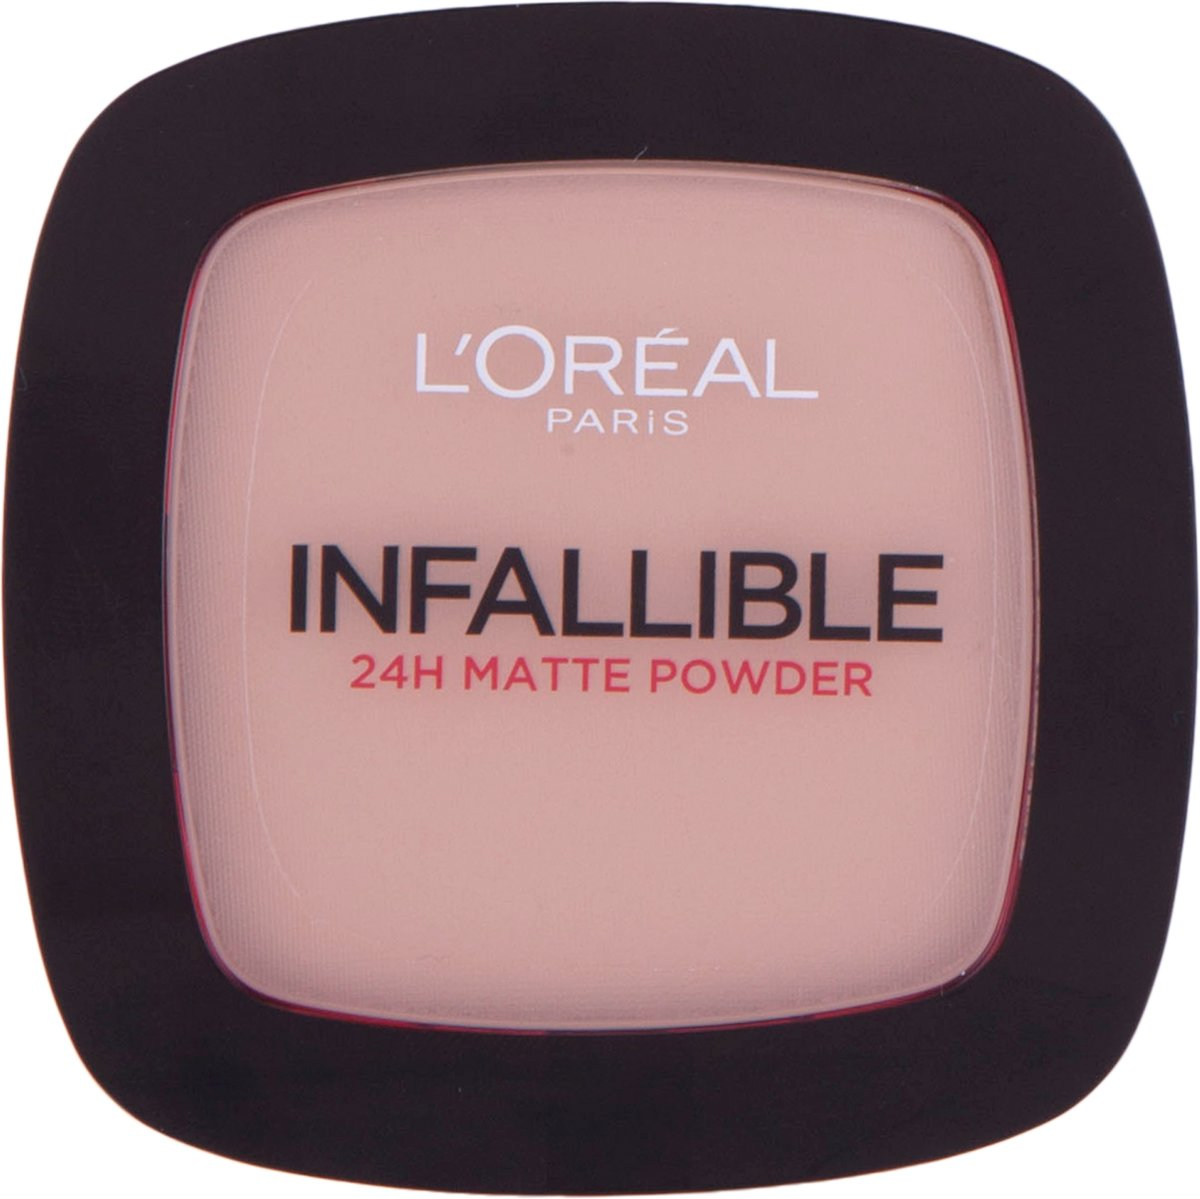 L'Oréal Paris Infallible Foundation - 160 Sand Beige - Poeder